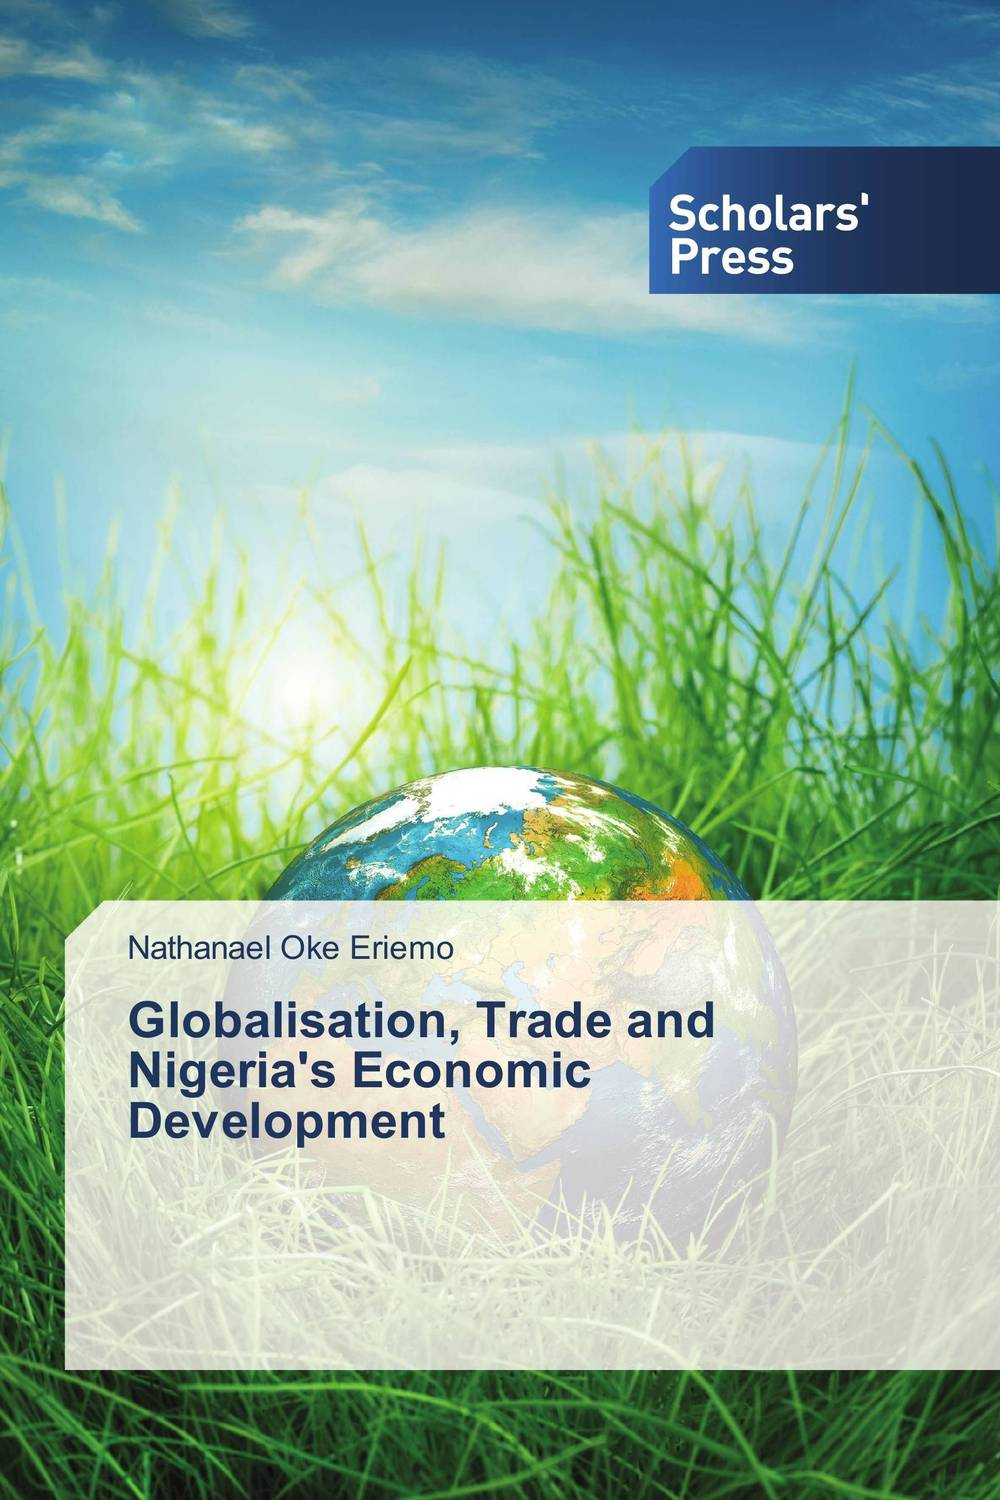 Globalisation, Trade and Nigeria's Economic Development